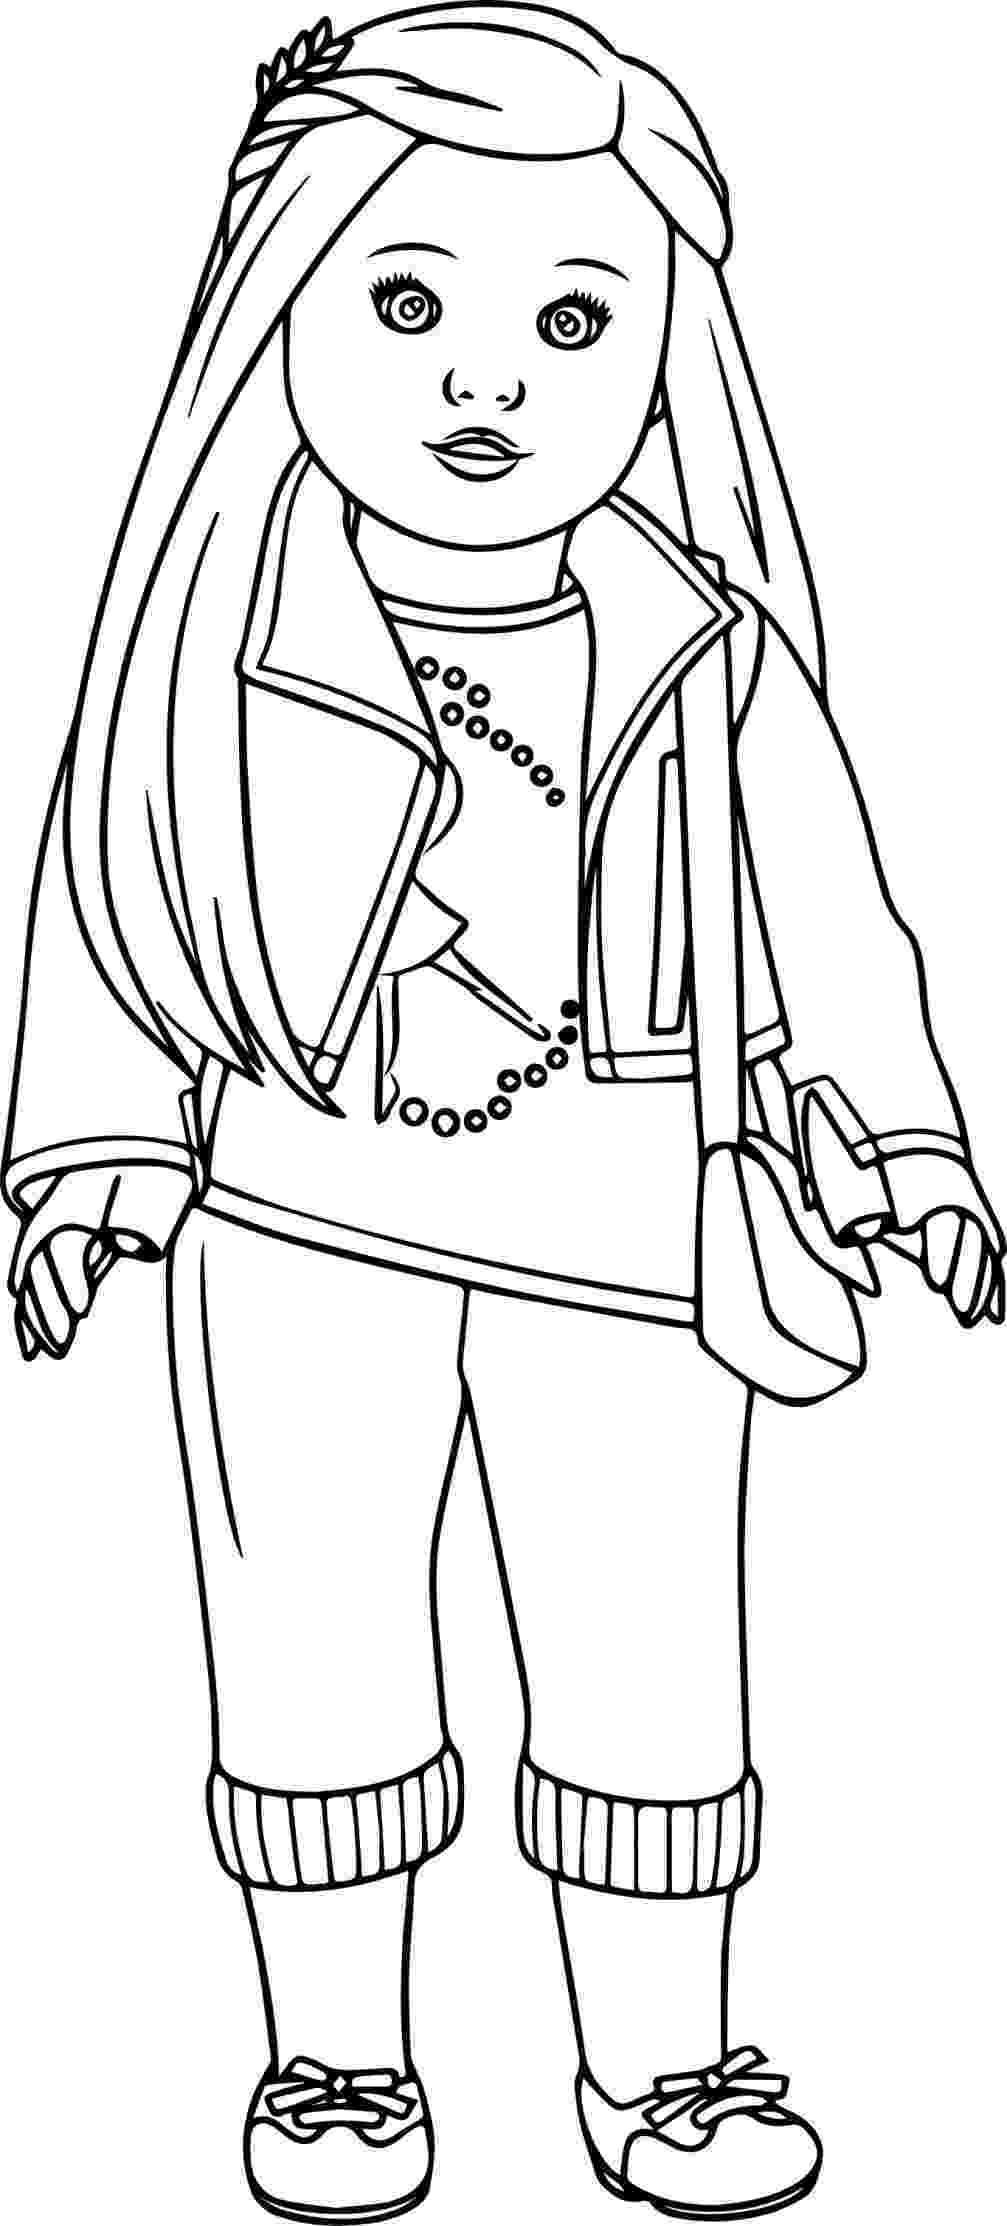 girls coloring pictures american girl coloring pages best coloring pages for kids pictures coloring girls